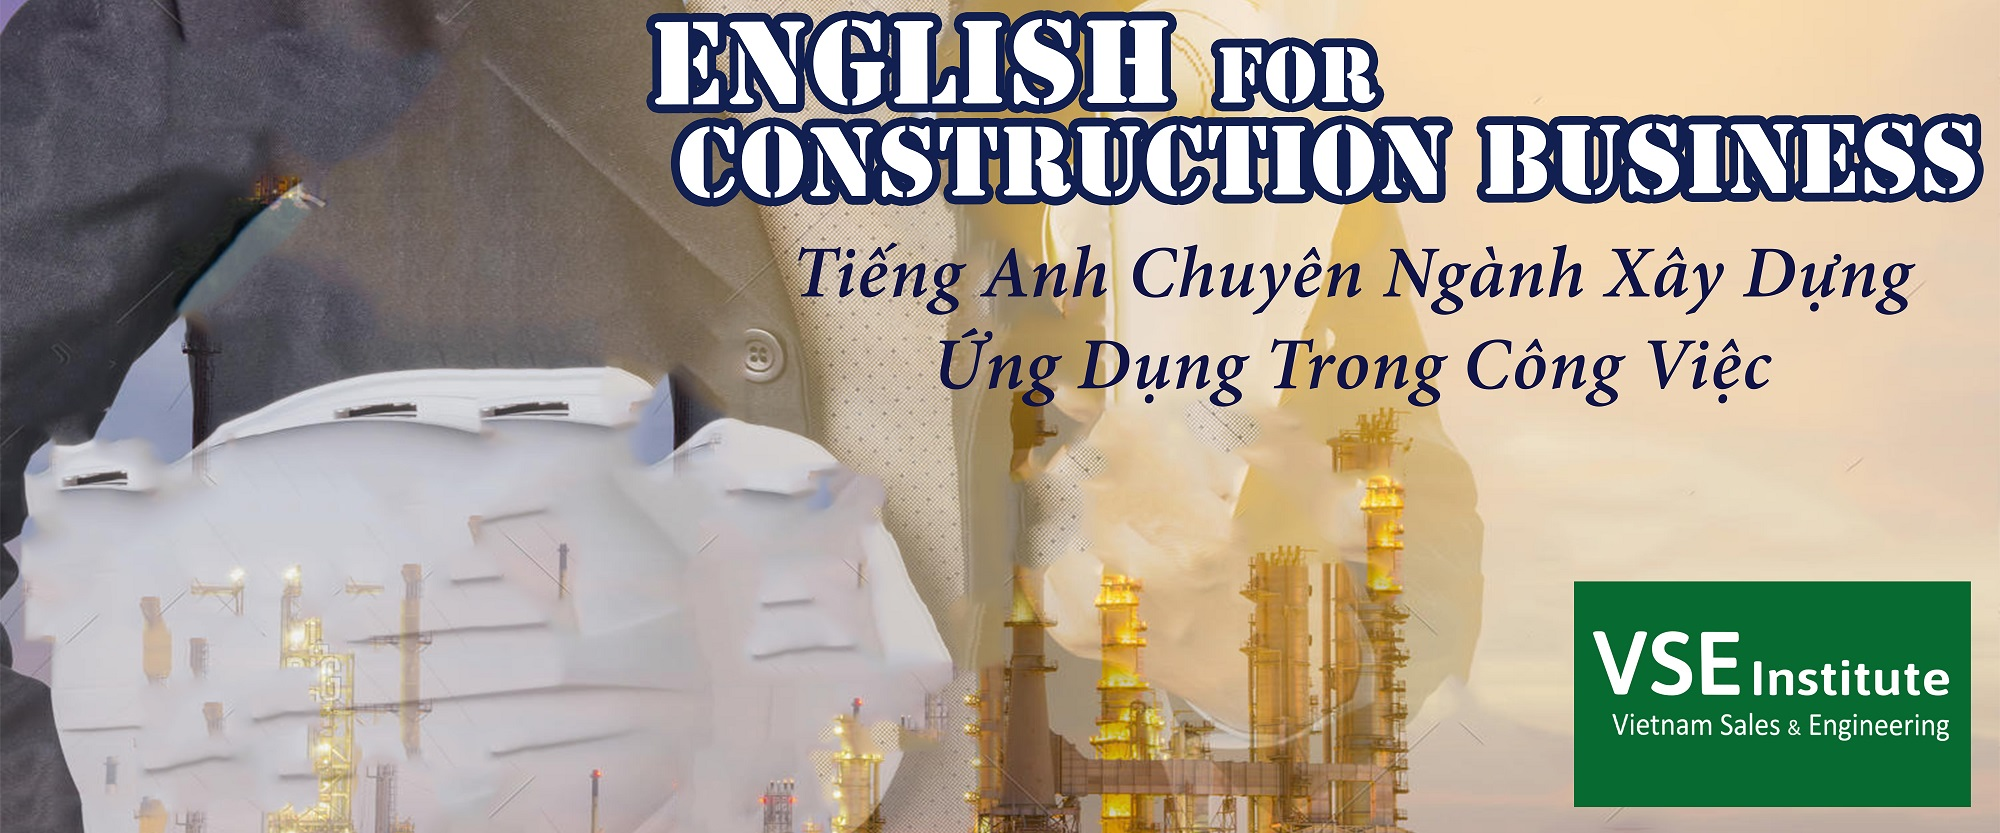 ENGLISH FOR CONSTRUCTION BUSINESS _ 0521